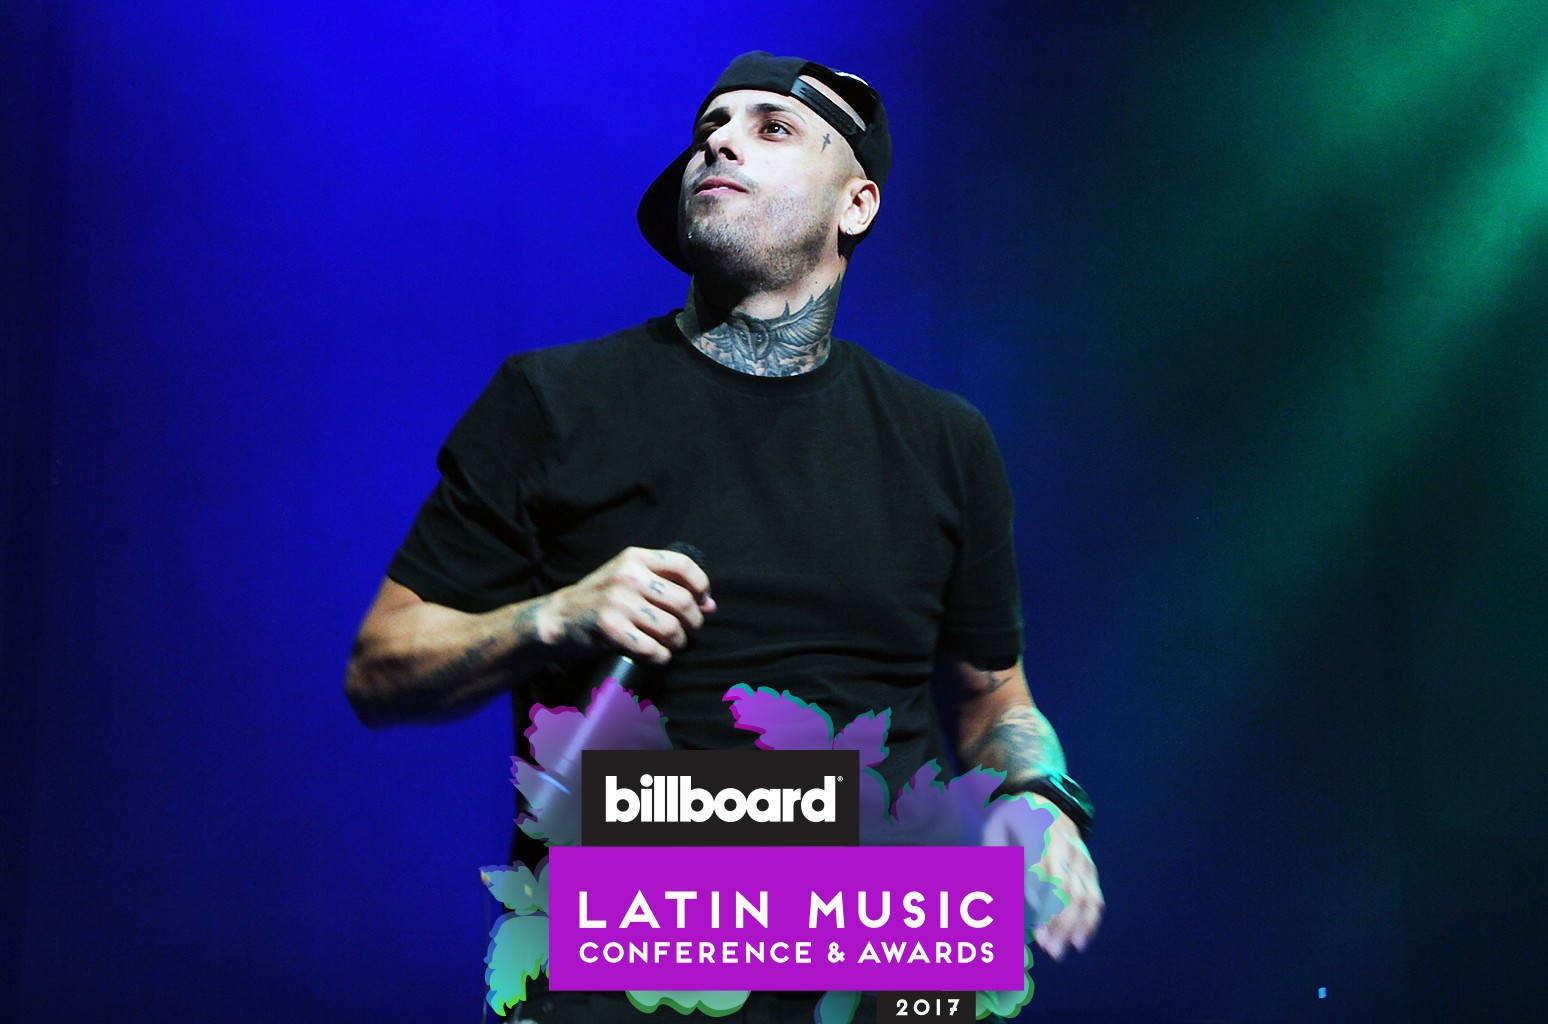 Nicky Jam performs at Coliseo Jose M. Agrelot on Sept. 18, 2015 in San Juan, Puerto Rico.